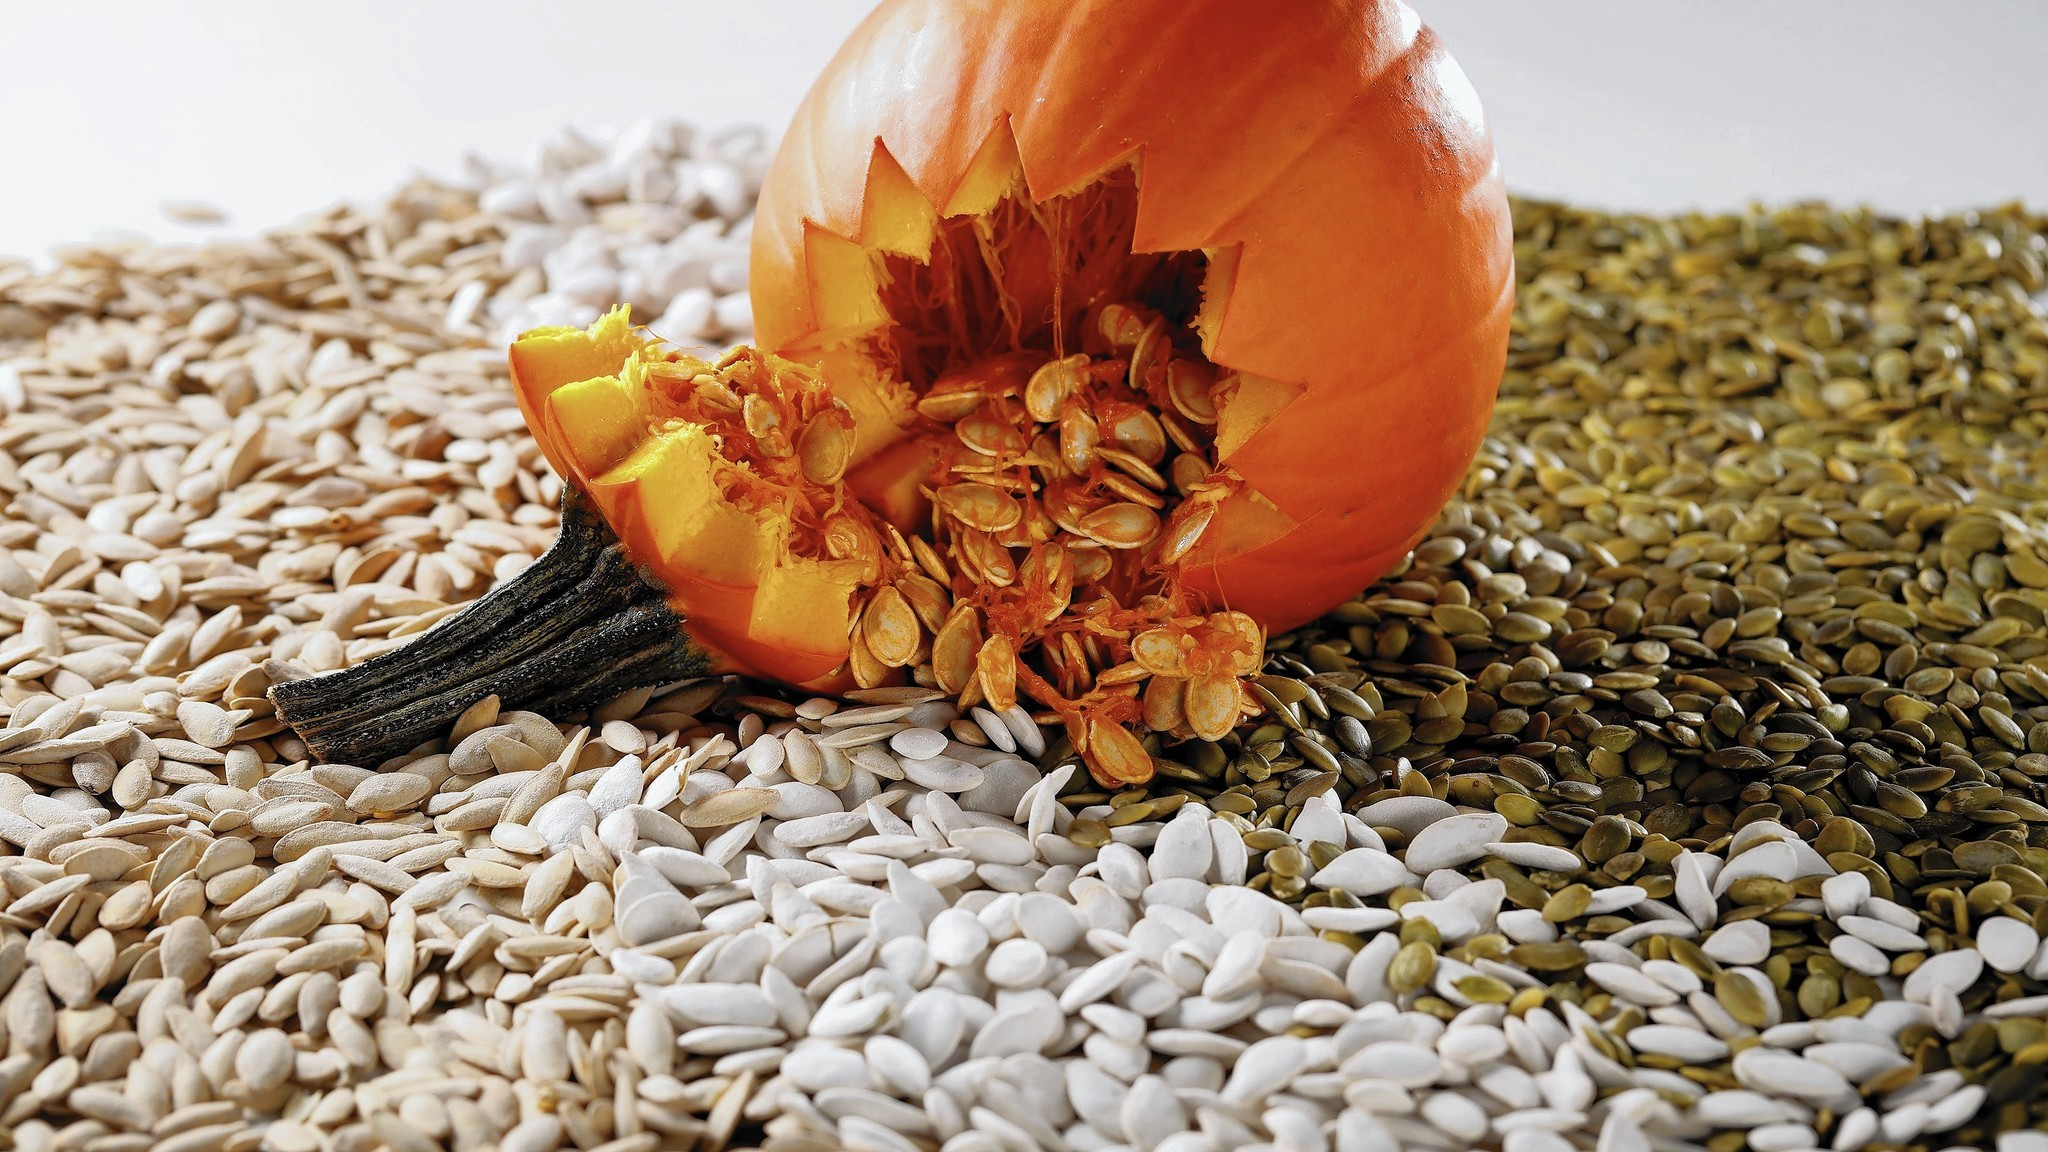 How To Cook With Pumpkin Seeds The Unsung Heroes Of